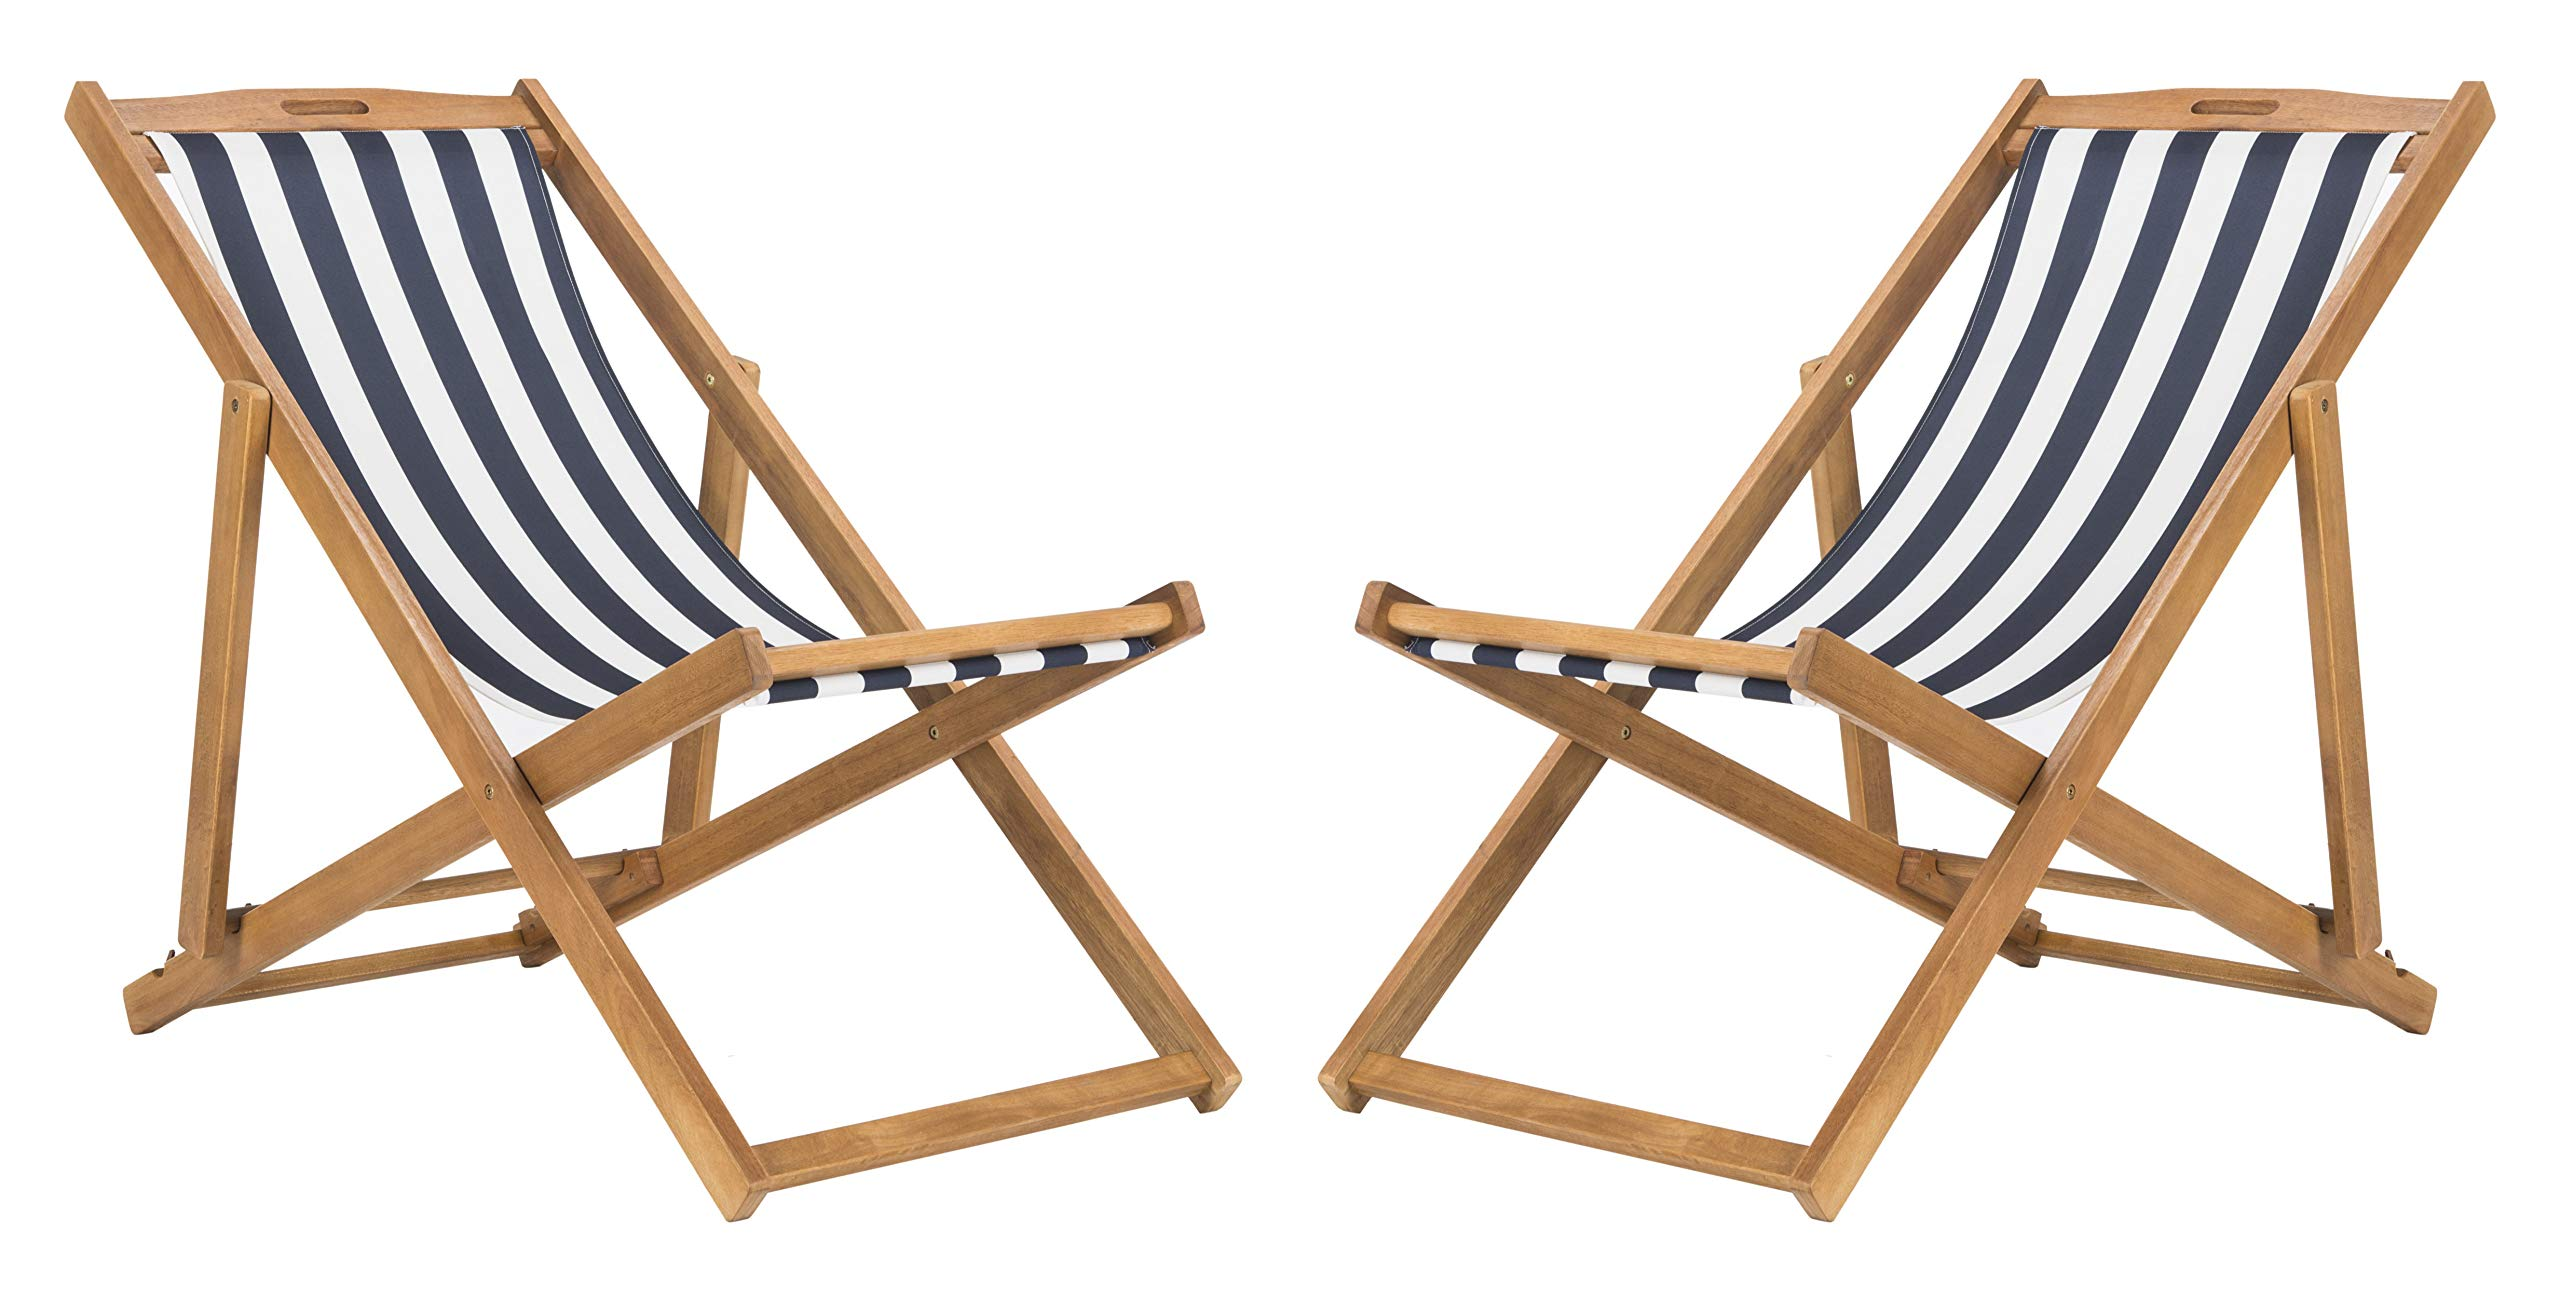 Safavieh PAT7040A-SET2 Outdoor Collection Loren Teak, Navy and White Foldable Sling Adirondack Chair